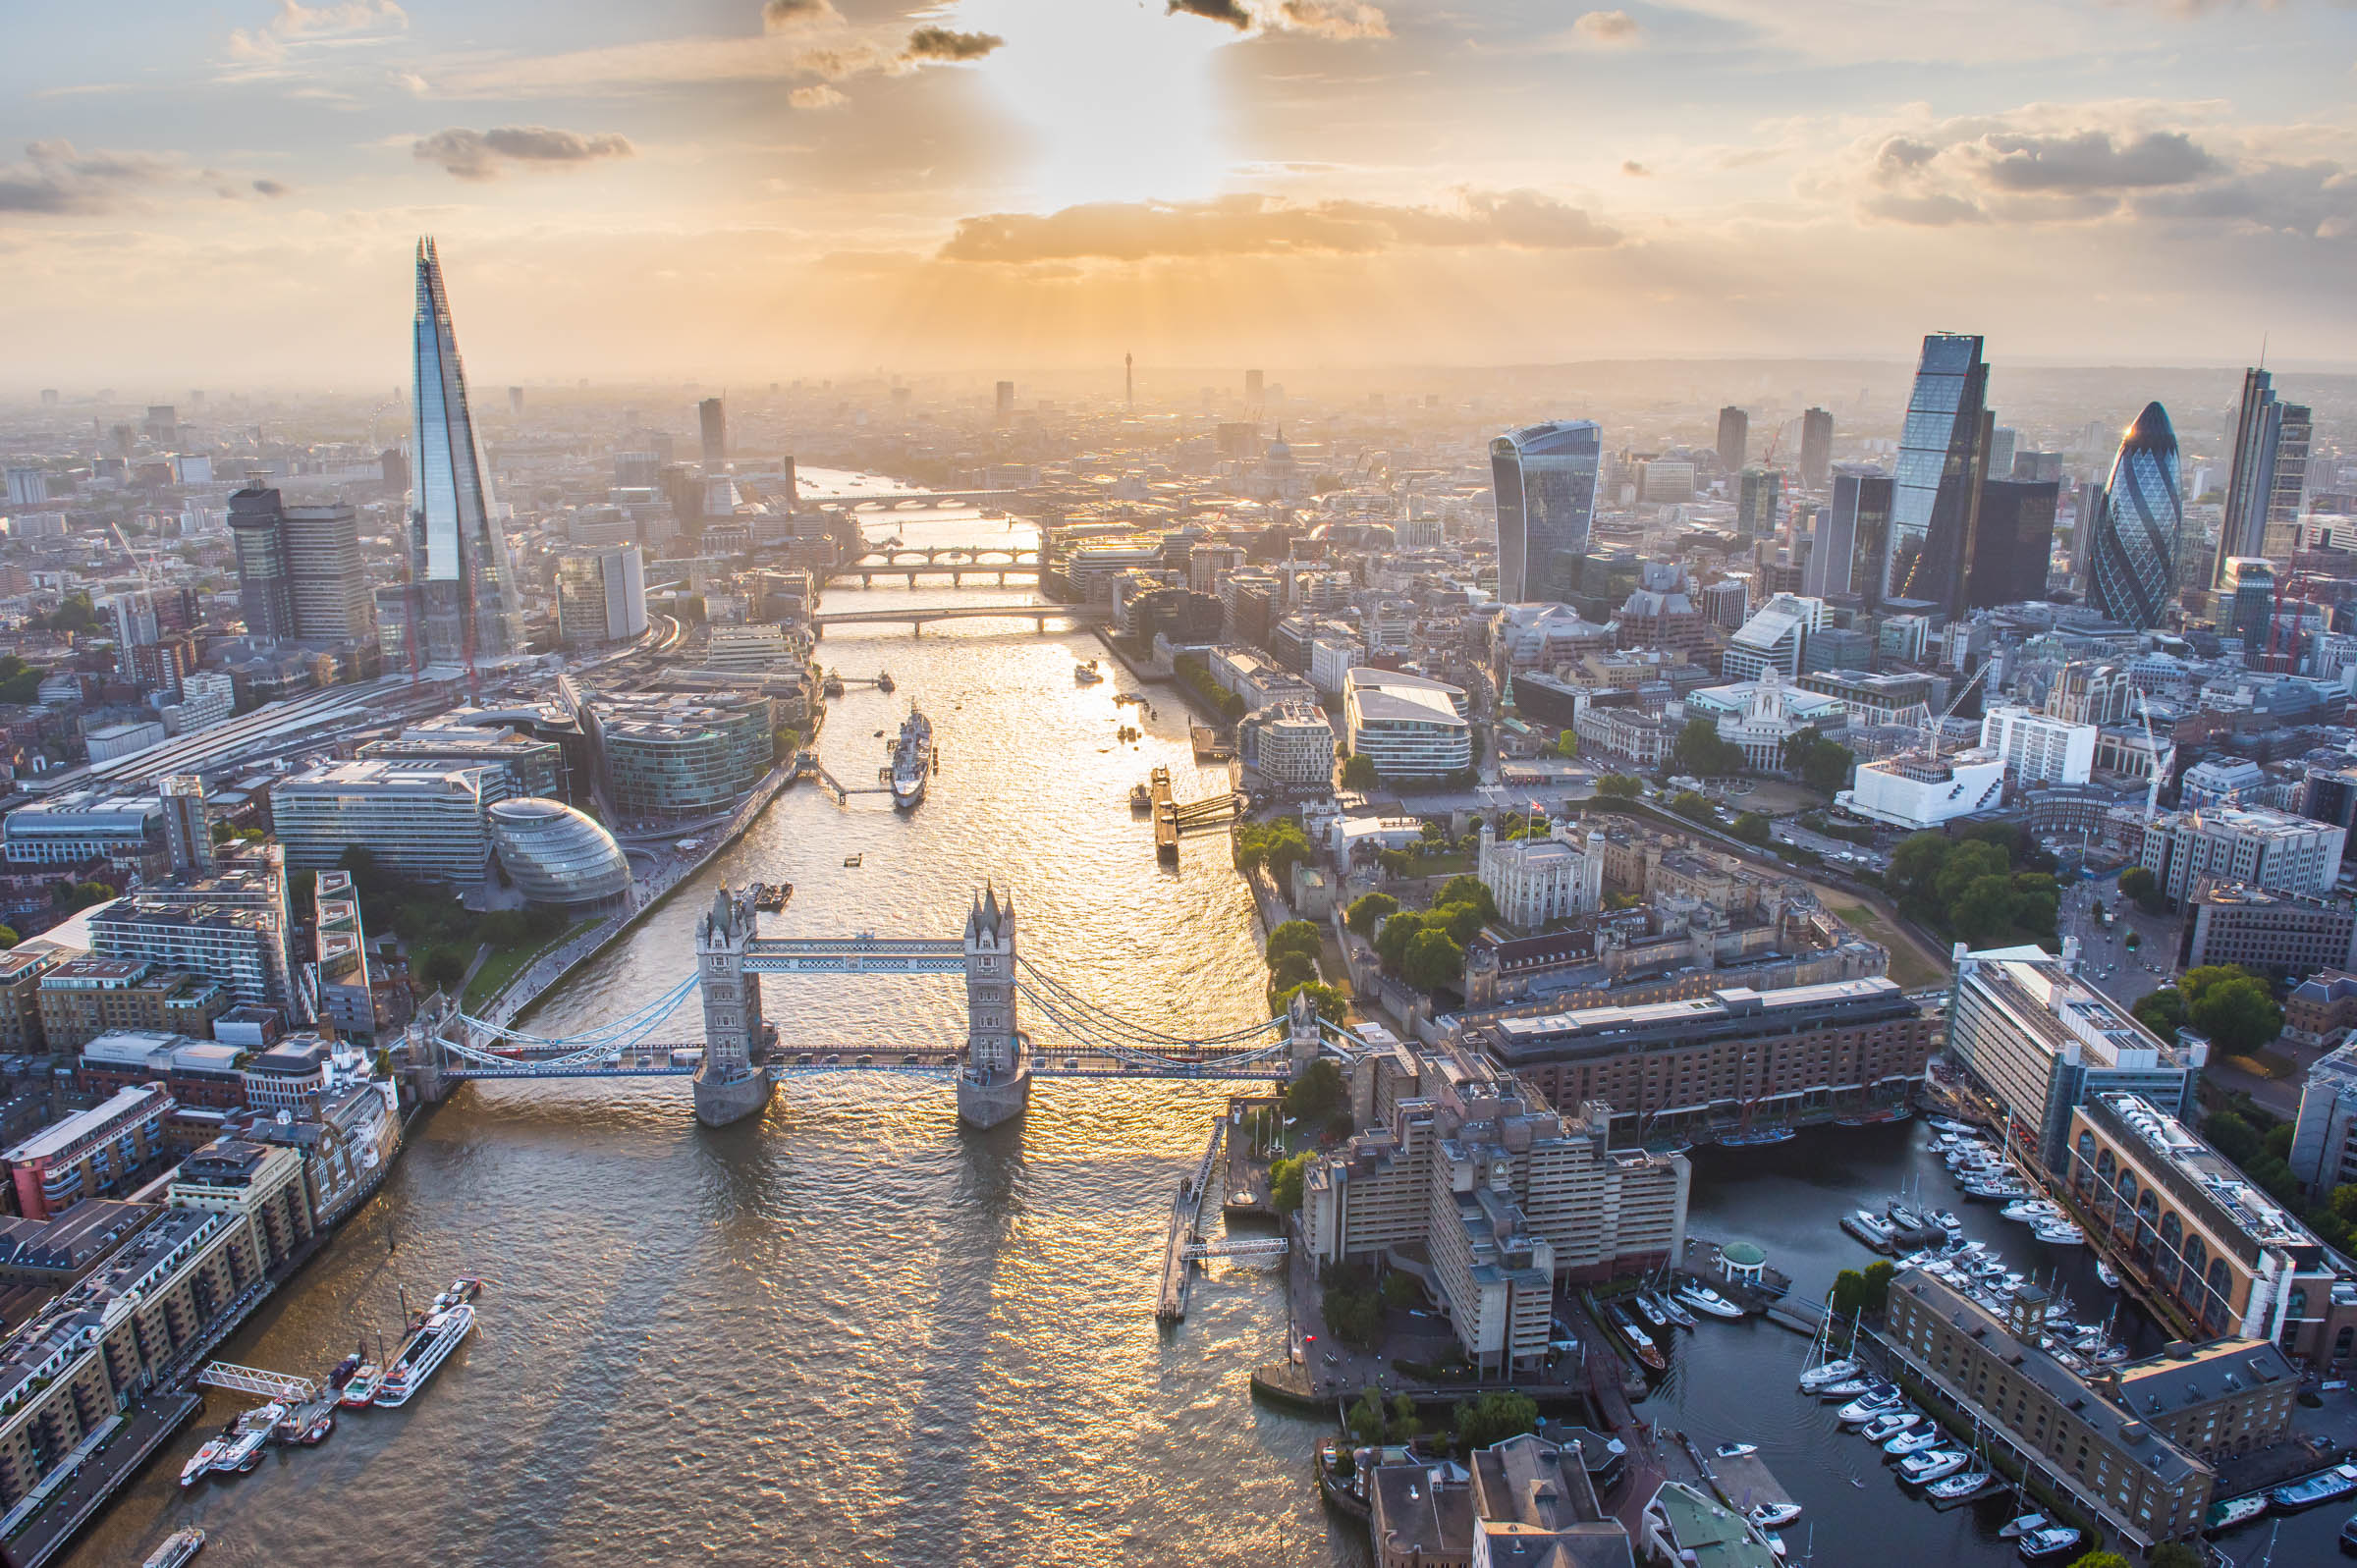 Tower Bridge, Tower of London, City of London and River Thames, London, aerial view